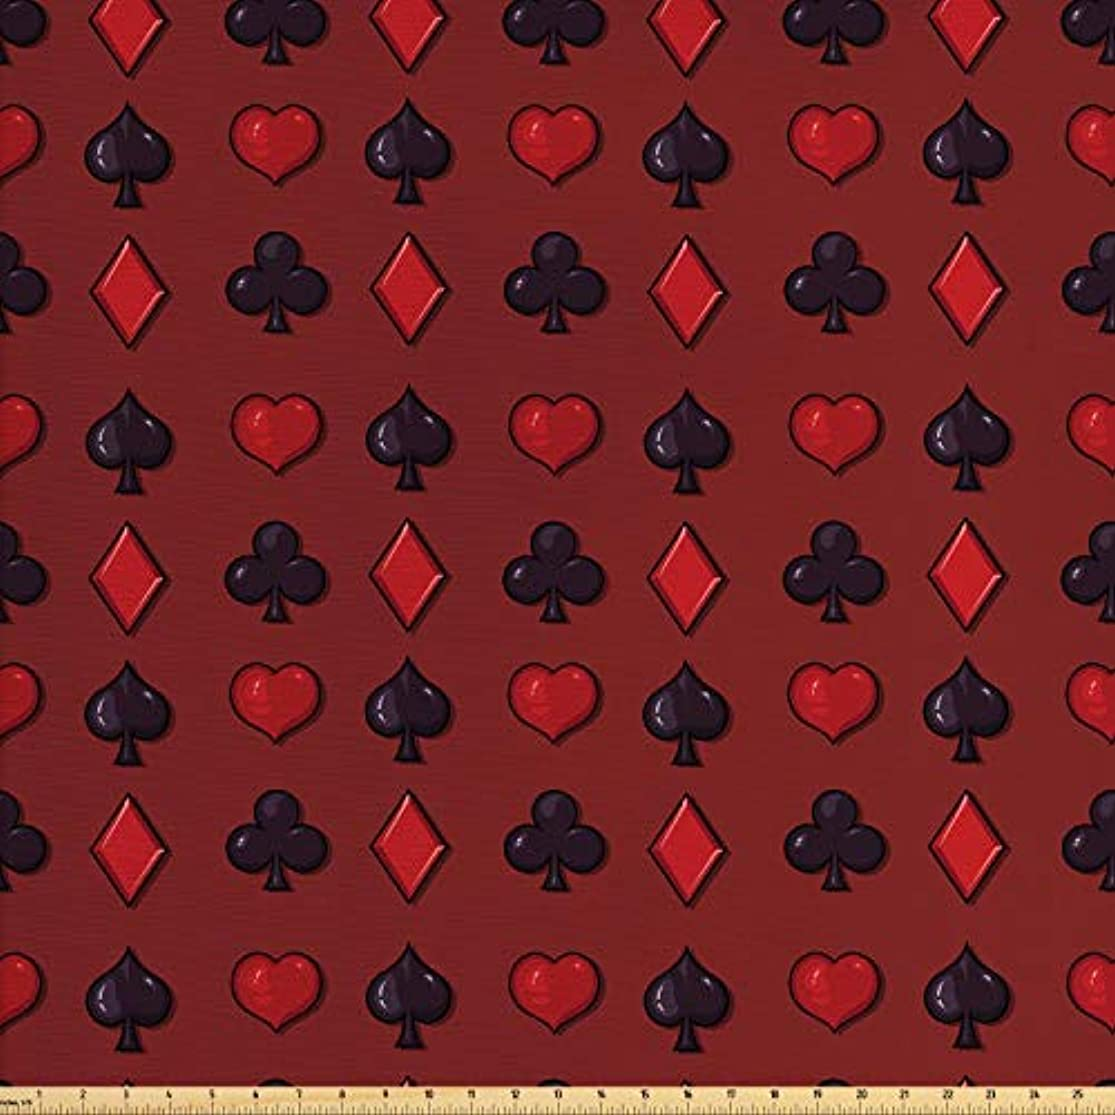 Lunarable Poker Fabric by The Yard, Suits of Cards Pattern with Clubs Spades and Hearts on an Abstract Red Background, Decorative Fabric for Upholstery and Home Accents, 2 Yards, Ruby Black nqjvvukp8